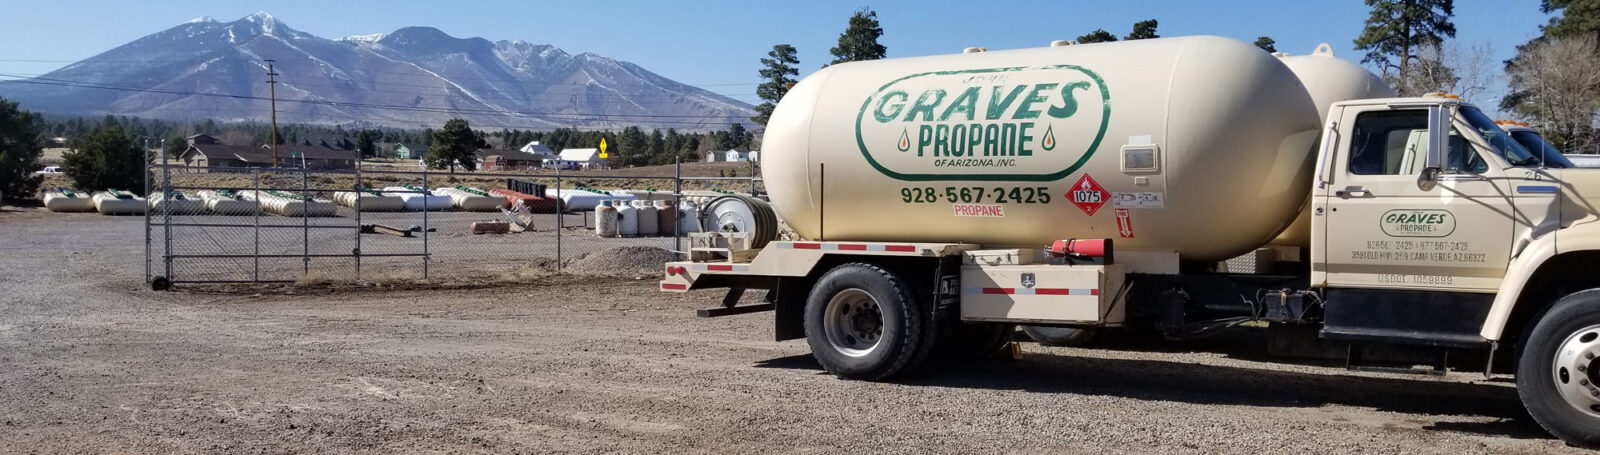 Propane Delivery Truck in Flagstaff